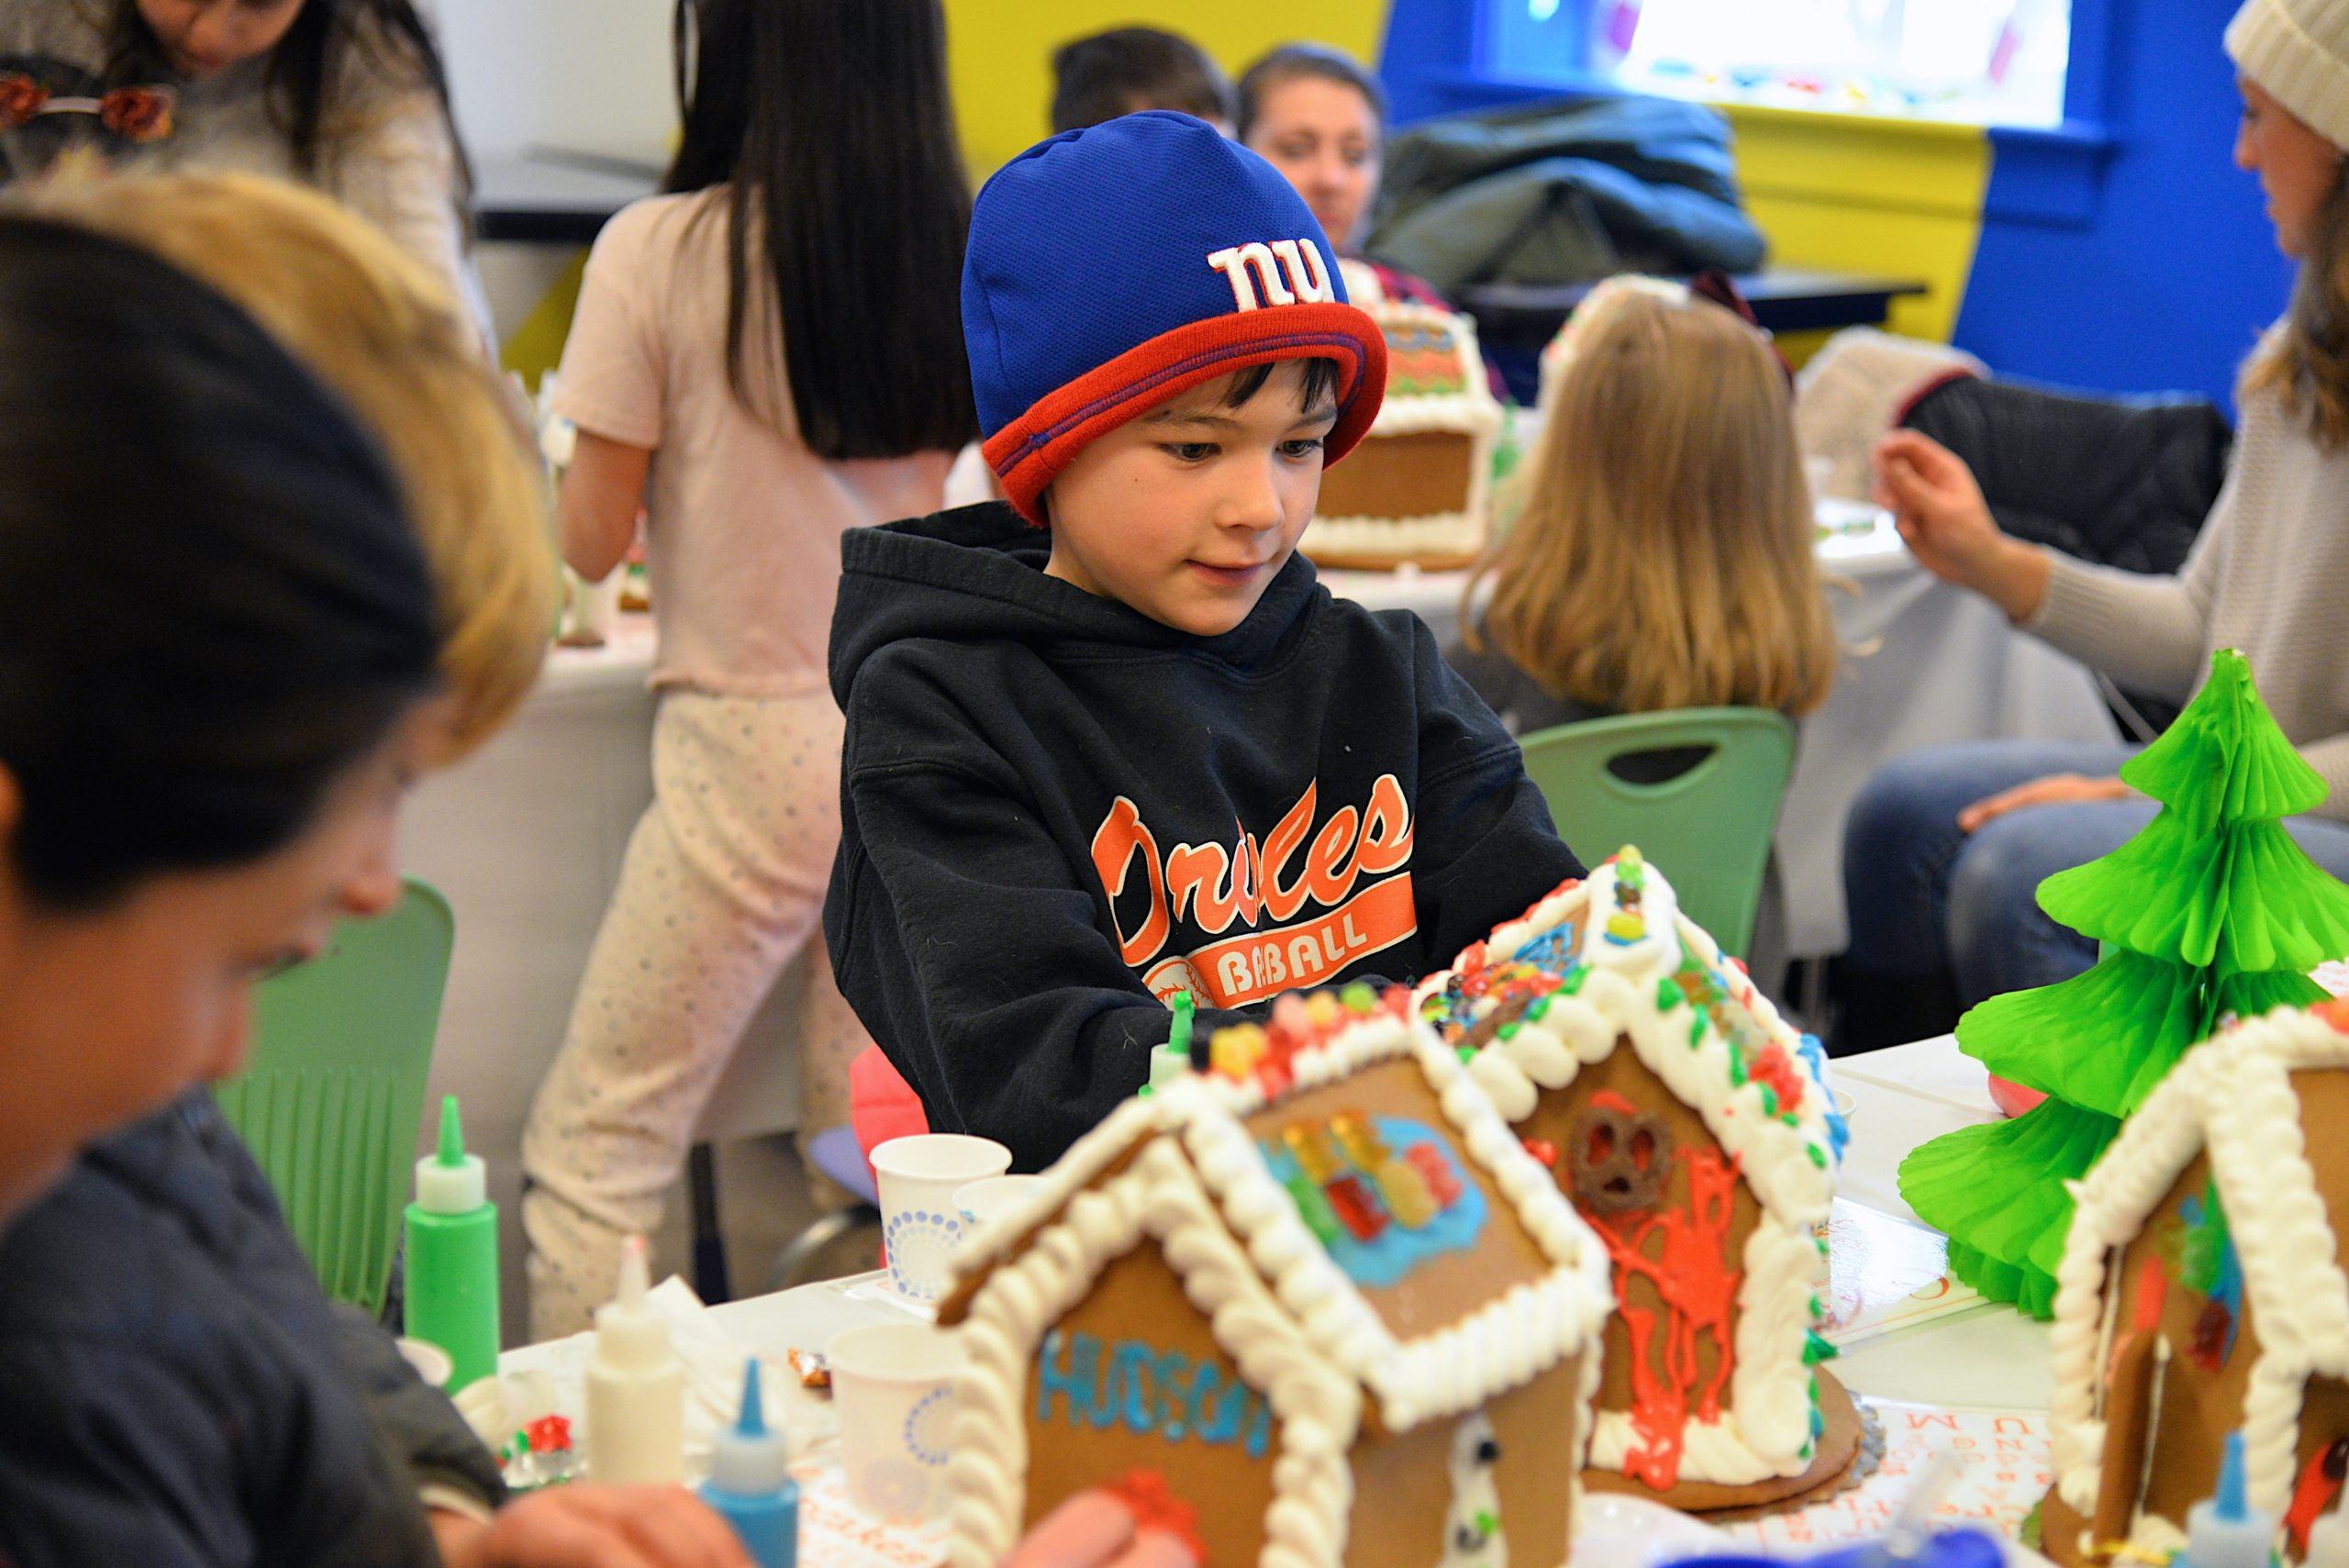 Guild Hall offered an opportunity to get in the holiday spirit by making gingerbread houses on Saturday. Harry Thomas working on his creation. KYRIL BROMLEY